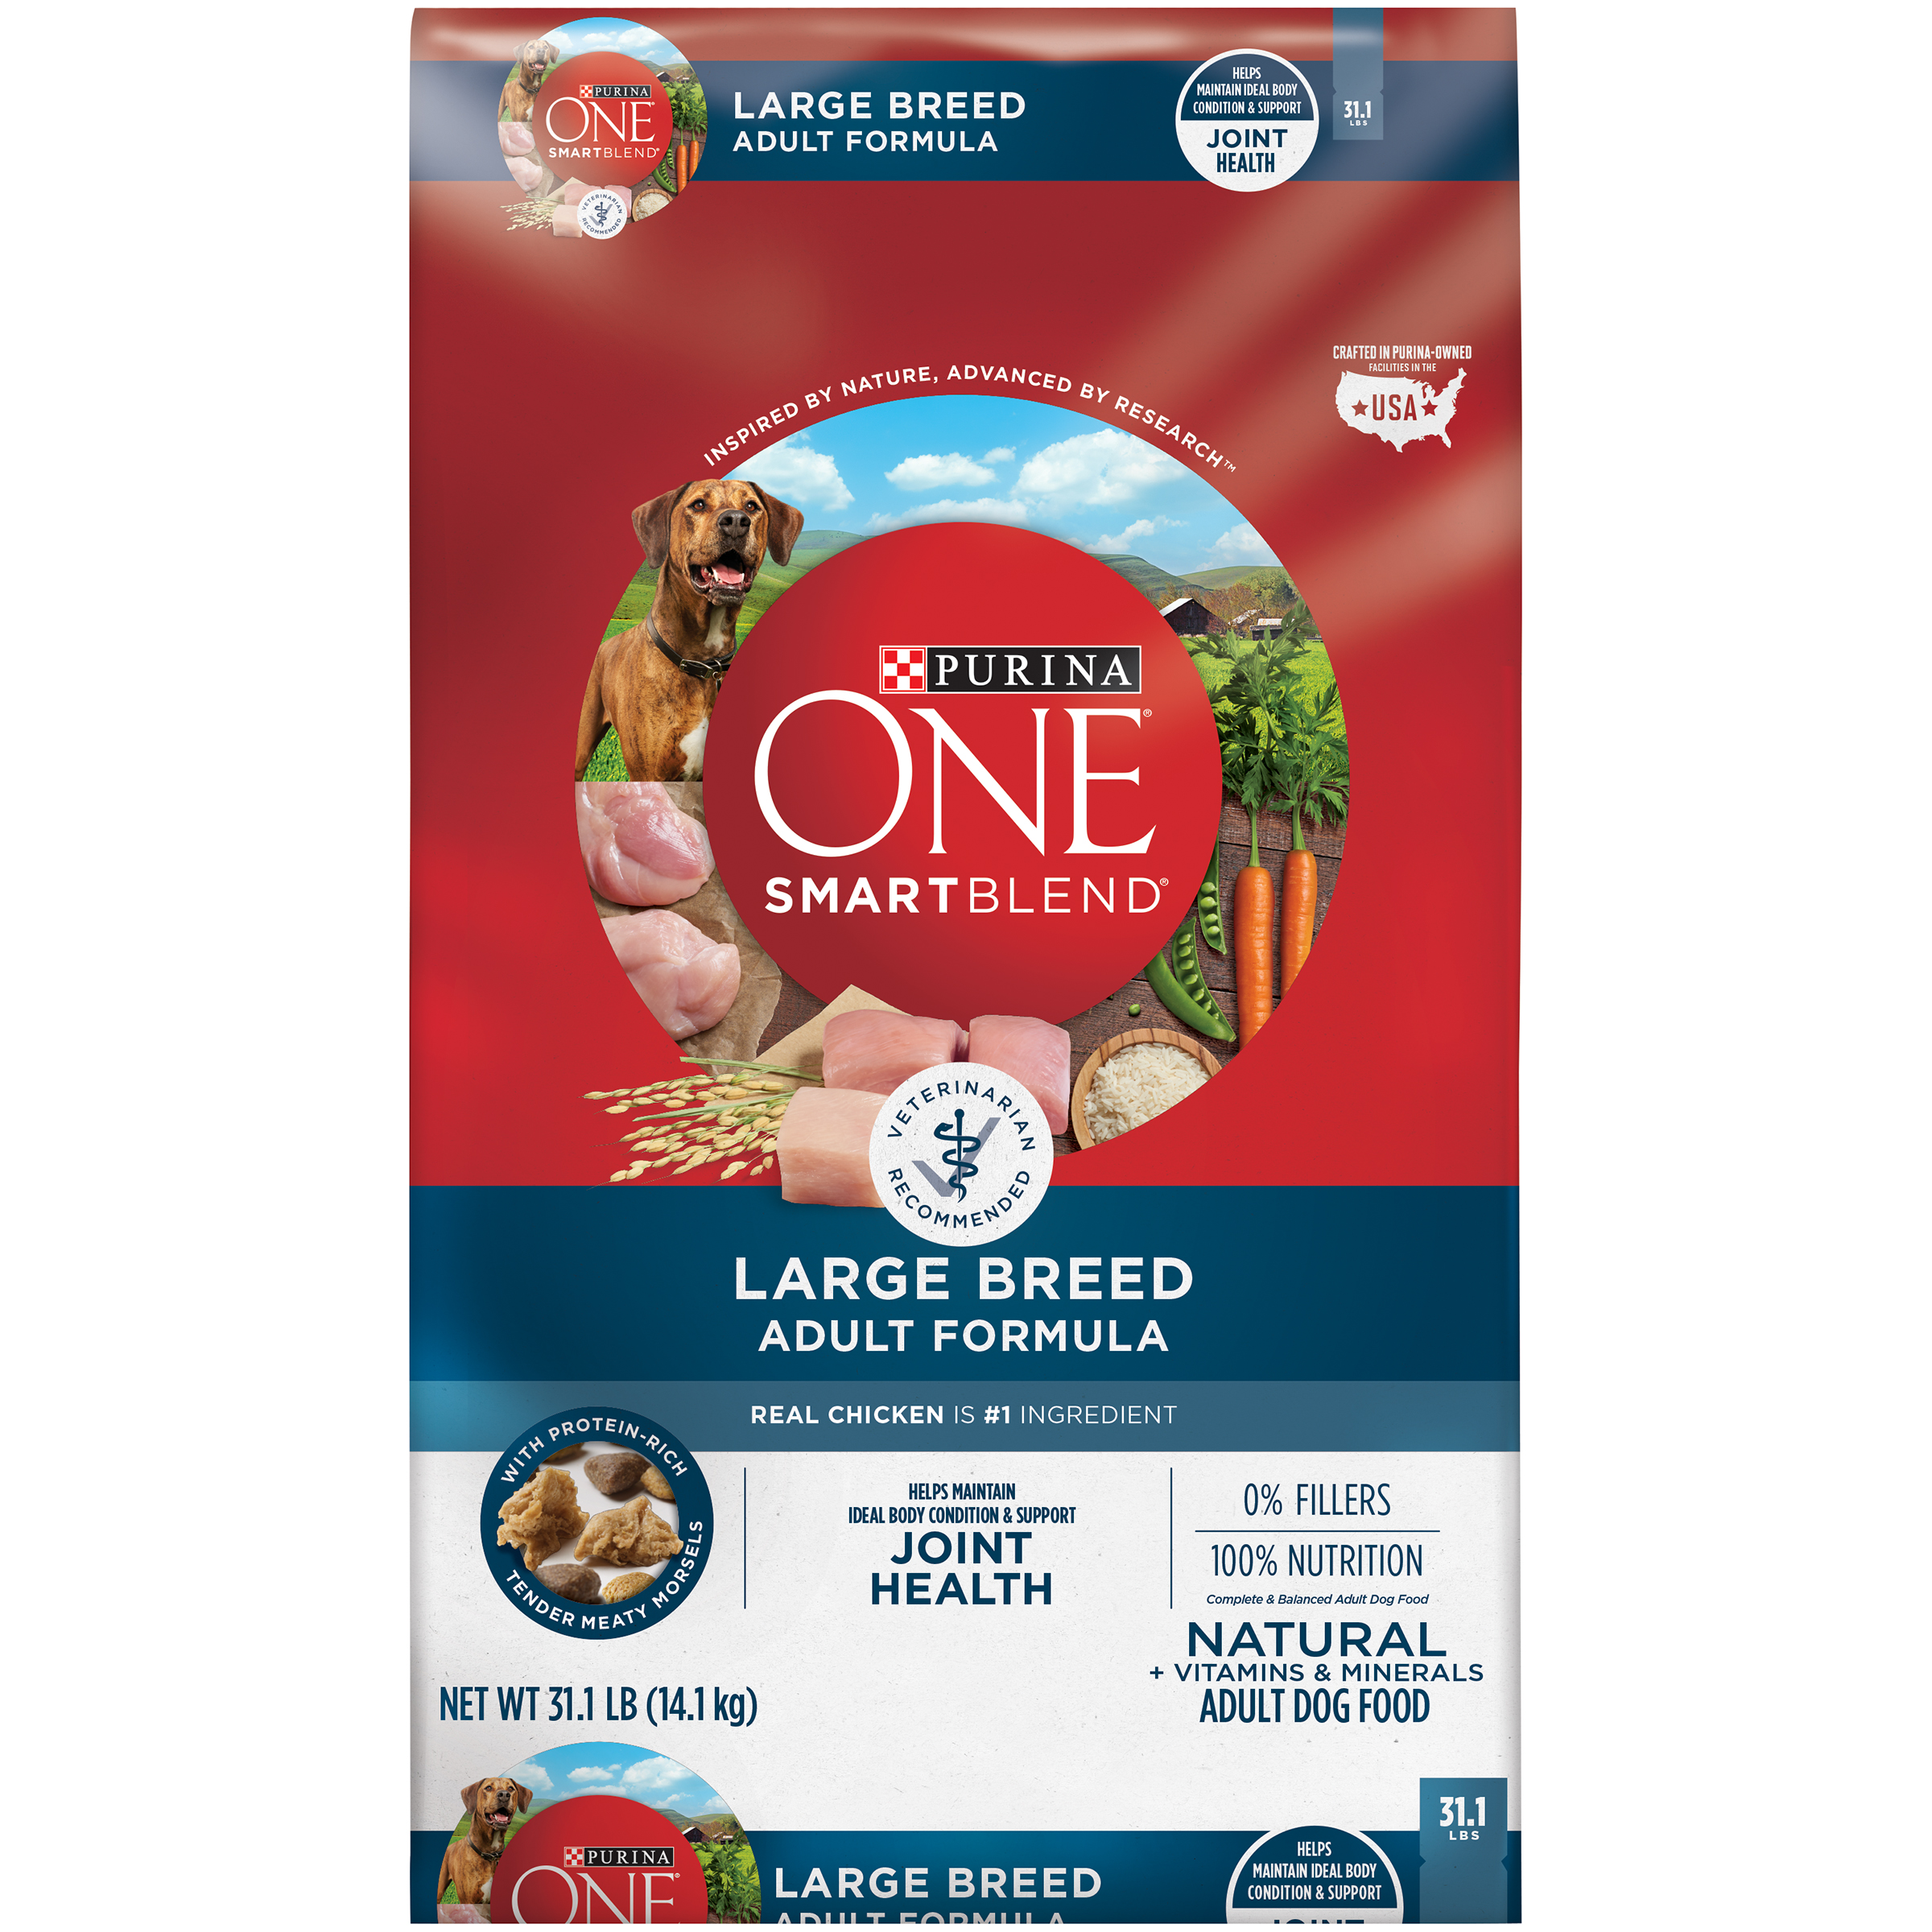 Purina ONE Natural Large Breed Dry Dog Food; SmartBlend Large Breed Adult Formula - 31.1 lb. Bag